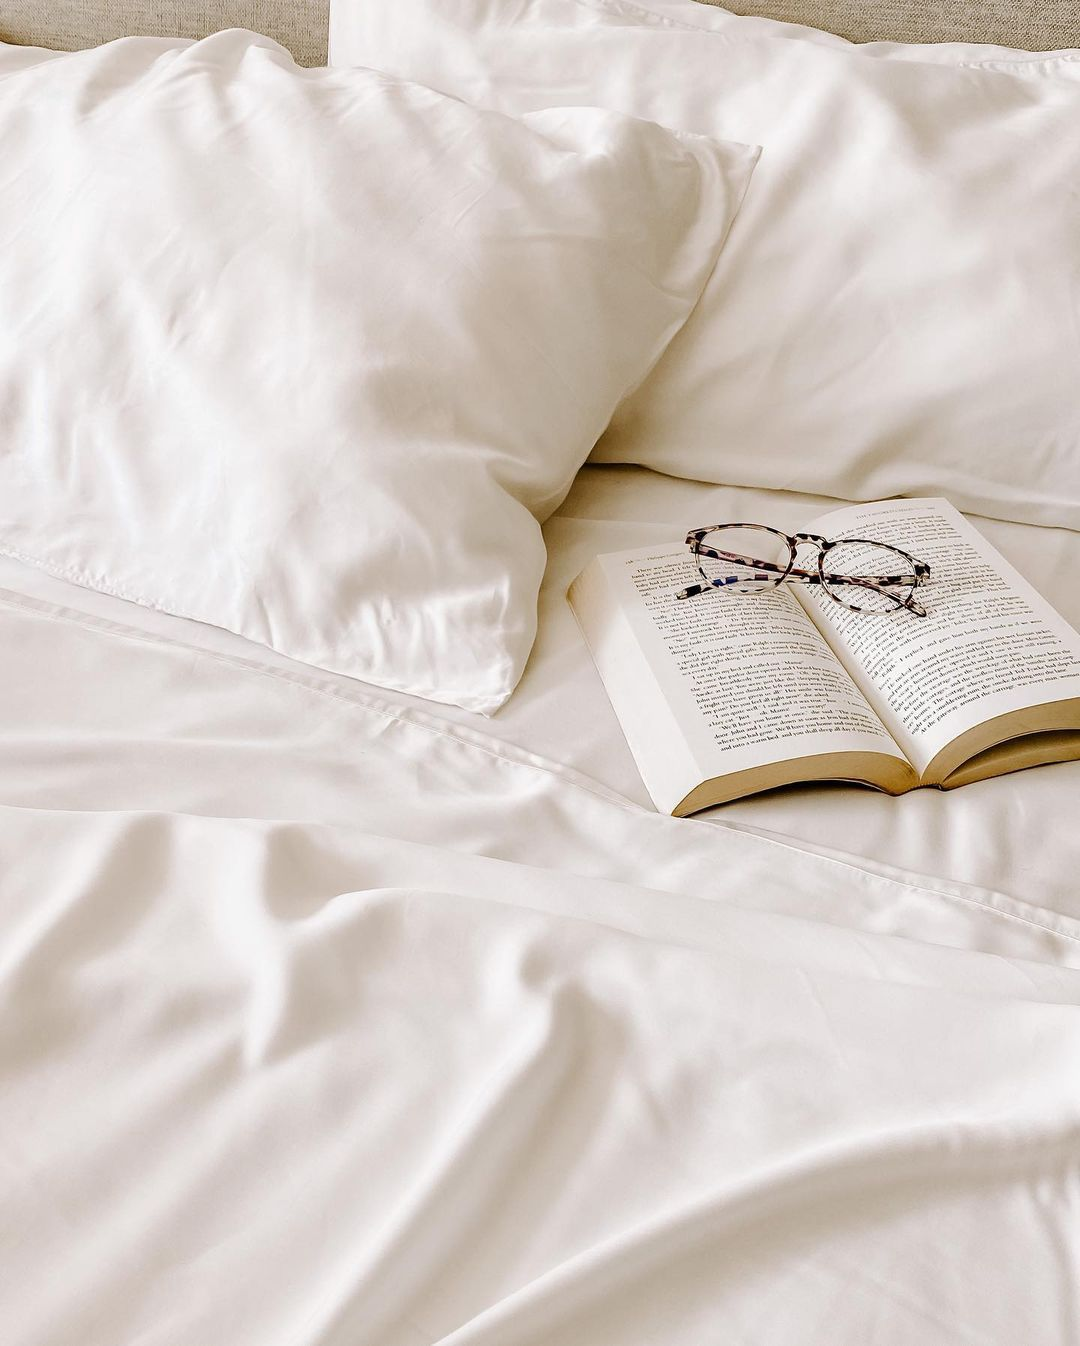 White bed with open book.